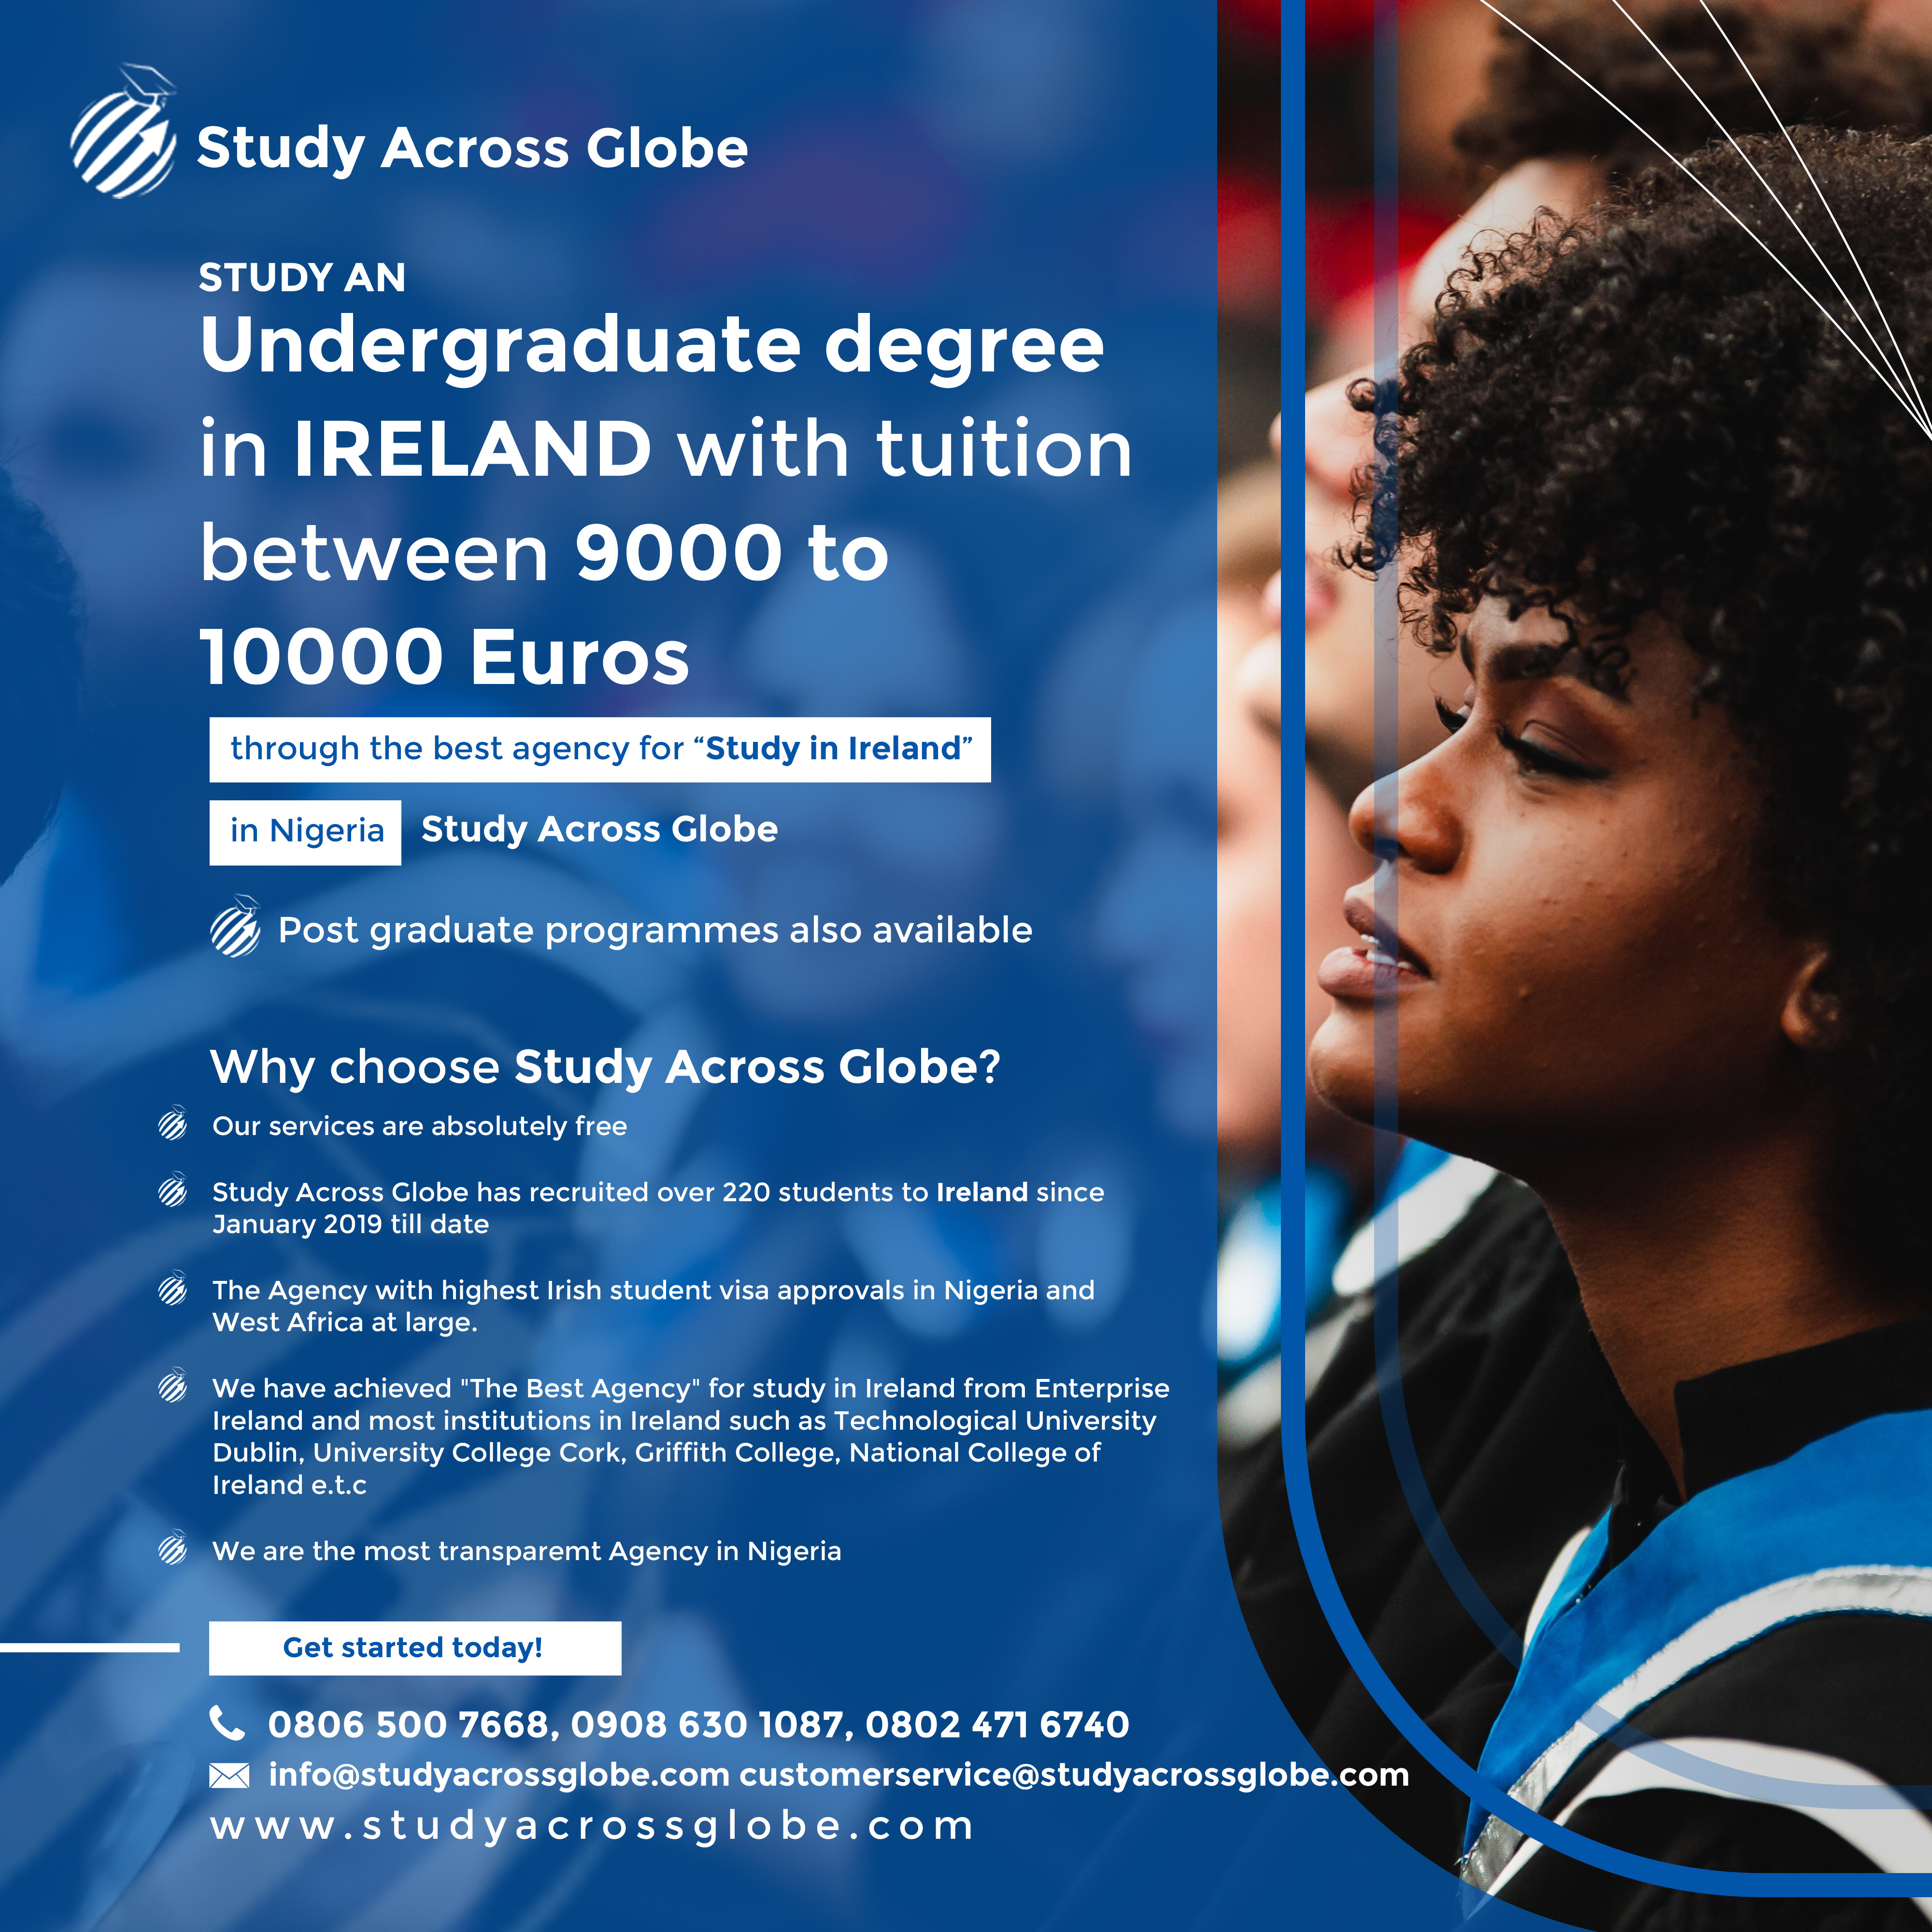 Study an Undergraduate degree in IRELAND with tuition between 9000 to 10000 Euros; post graduate programs also available - through the best agency for Study in Ireland in Nigeria Study Across Globe